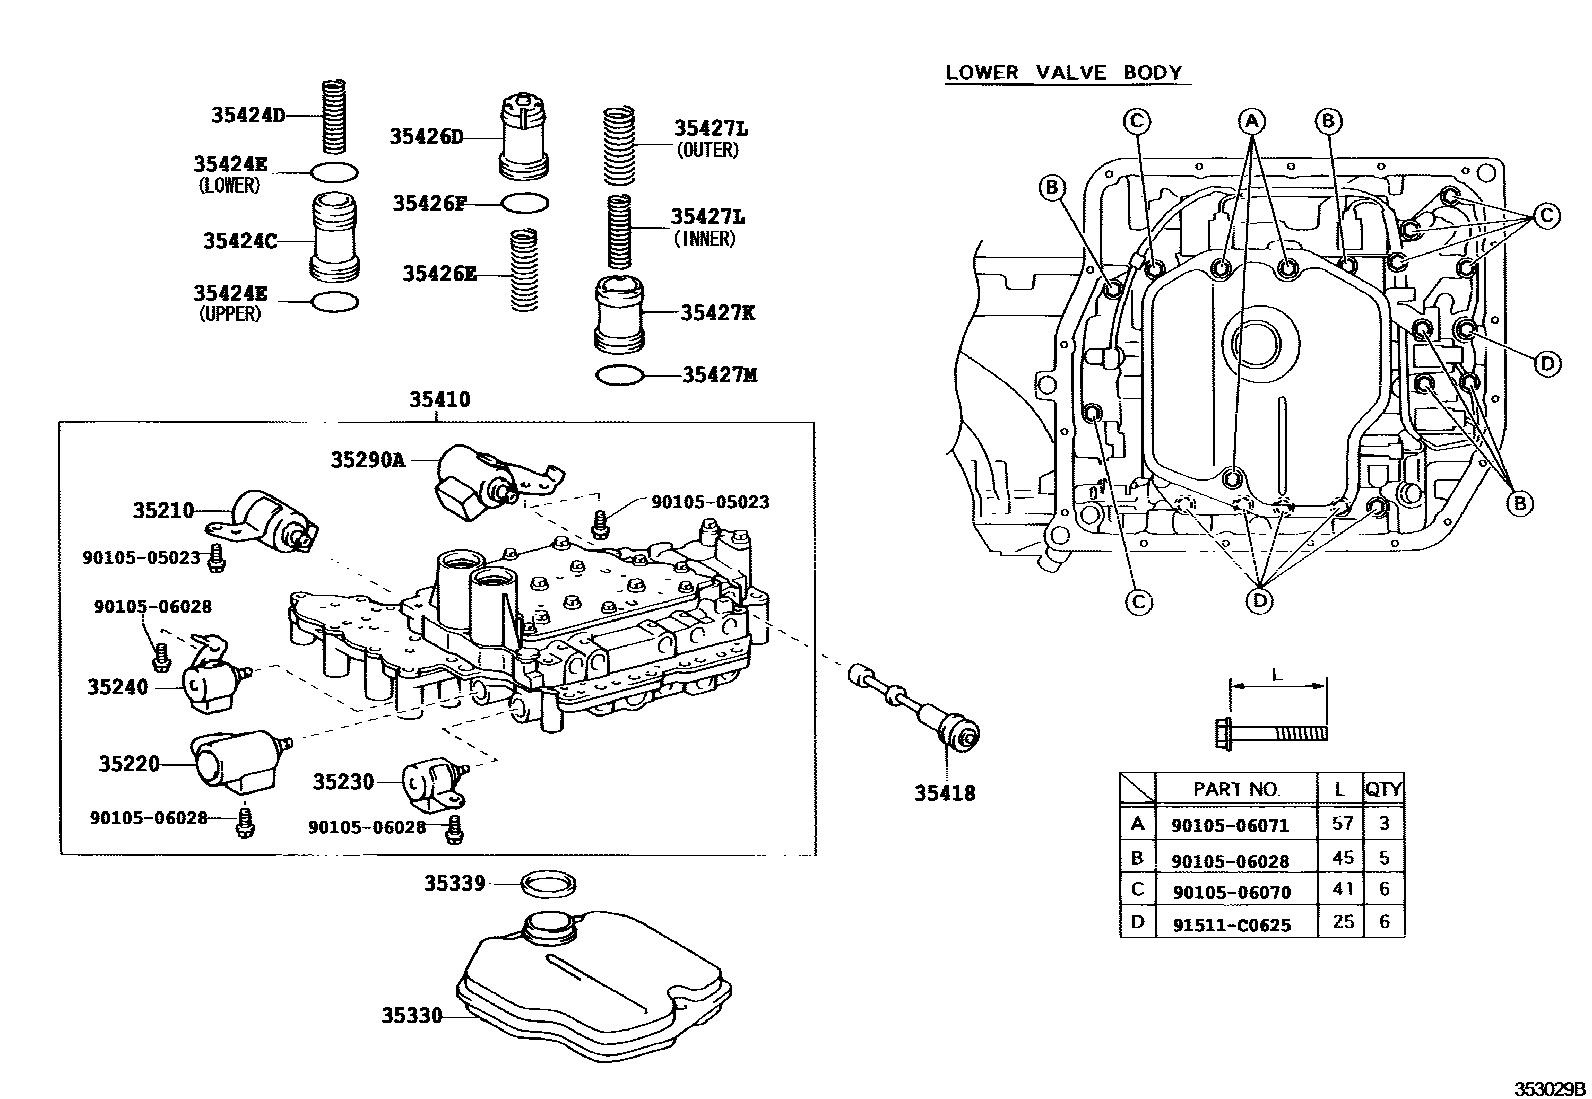 C6 Ford Transmission Parts Diagram Lzk Gallery